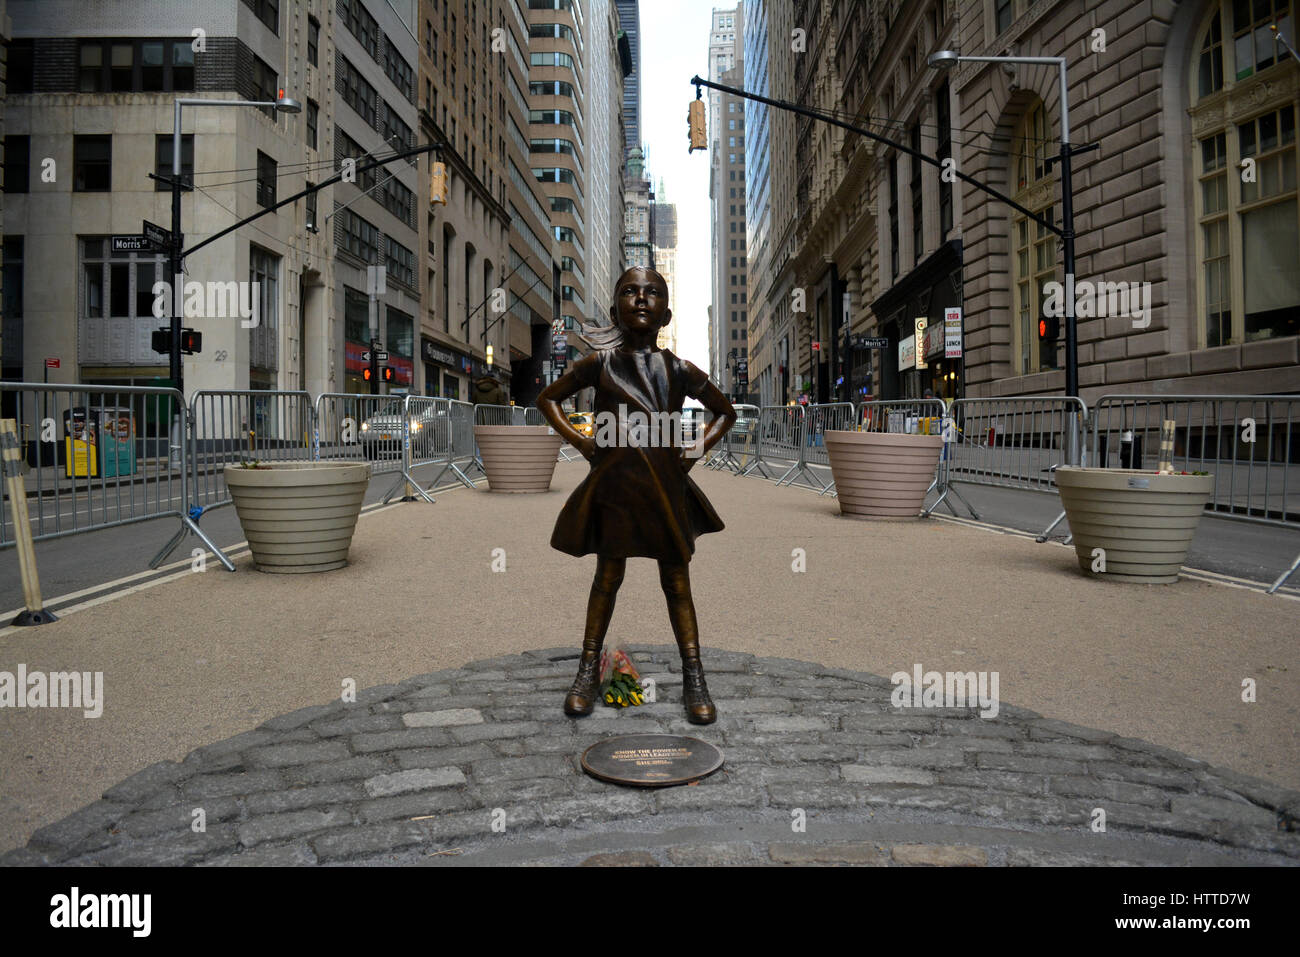 'The Fearless Girl' statue in Lower Manhattan. - Stock Image